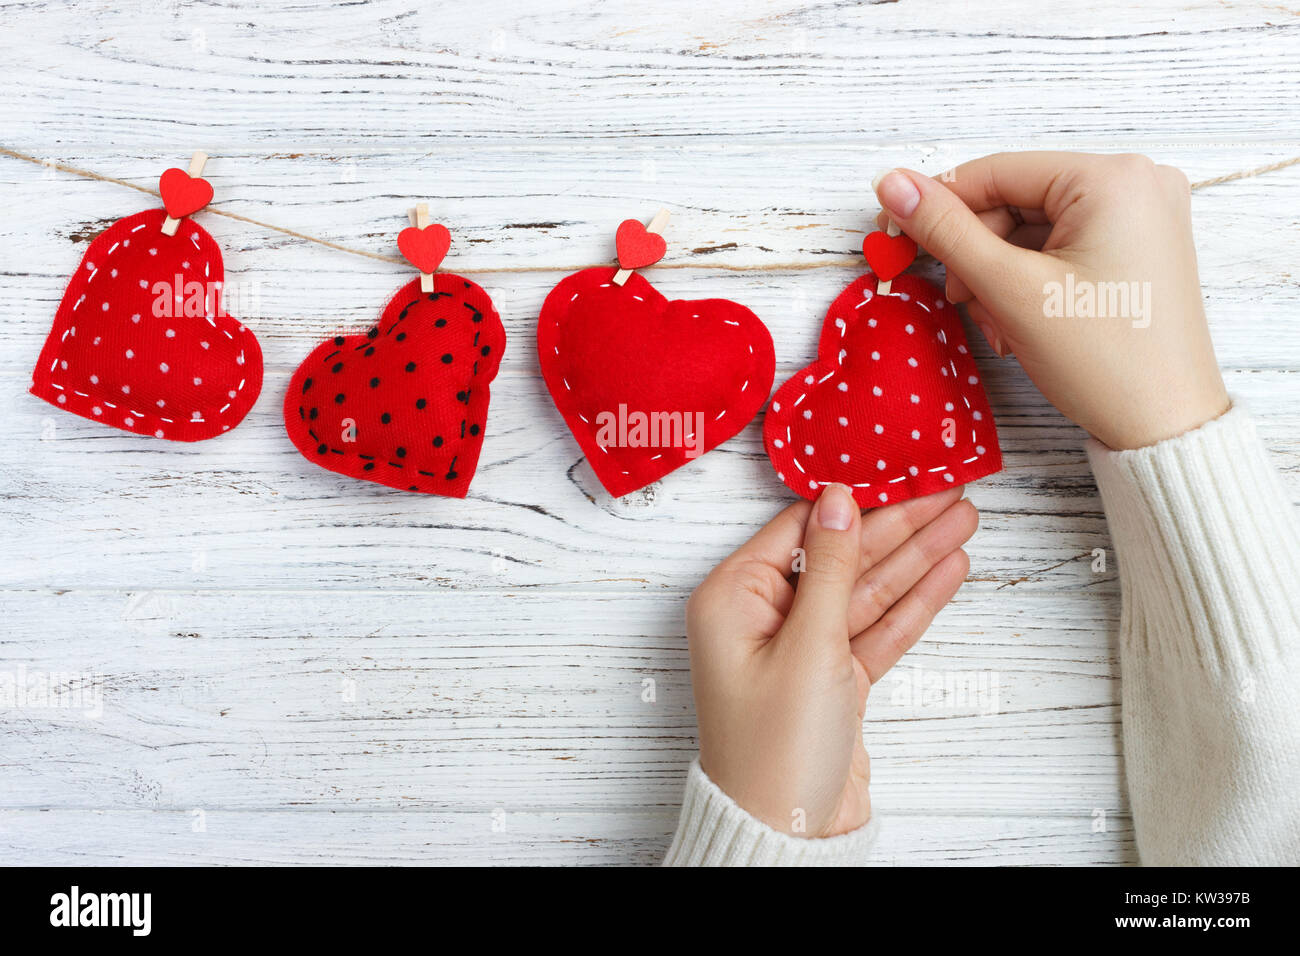 girl hanging hearts on a rope. wooden background. - Stock Image